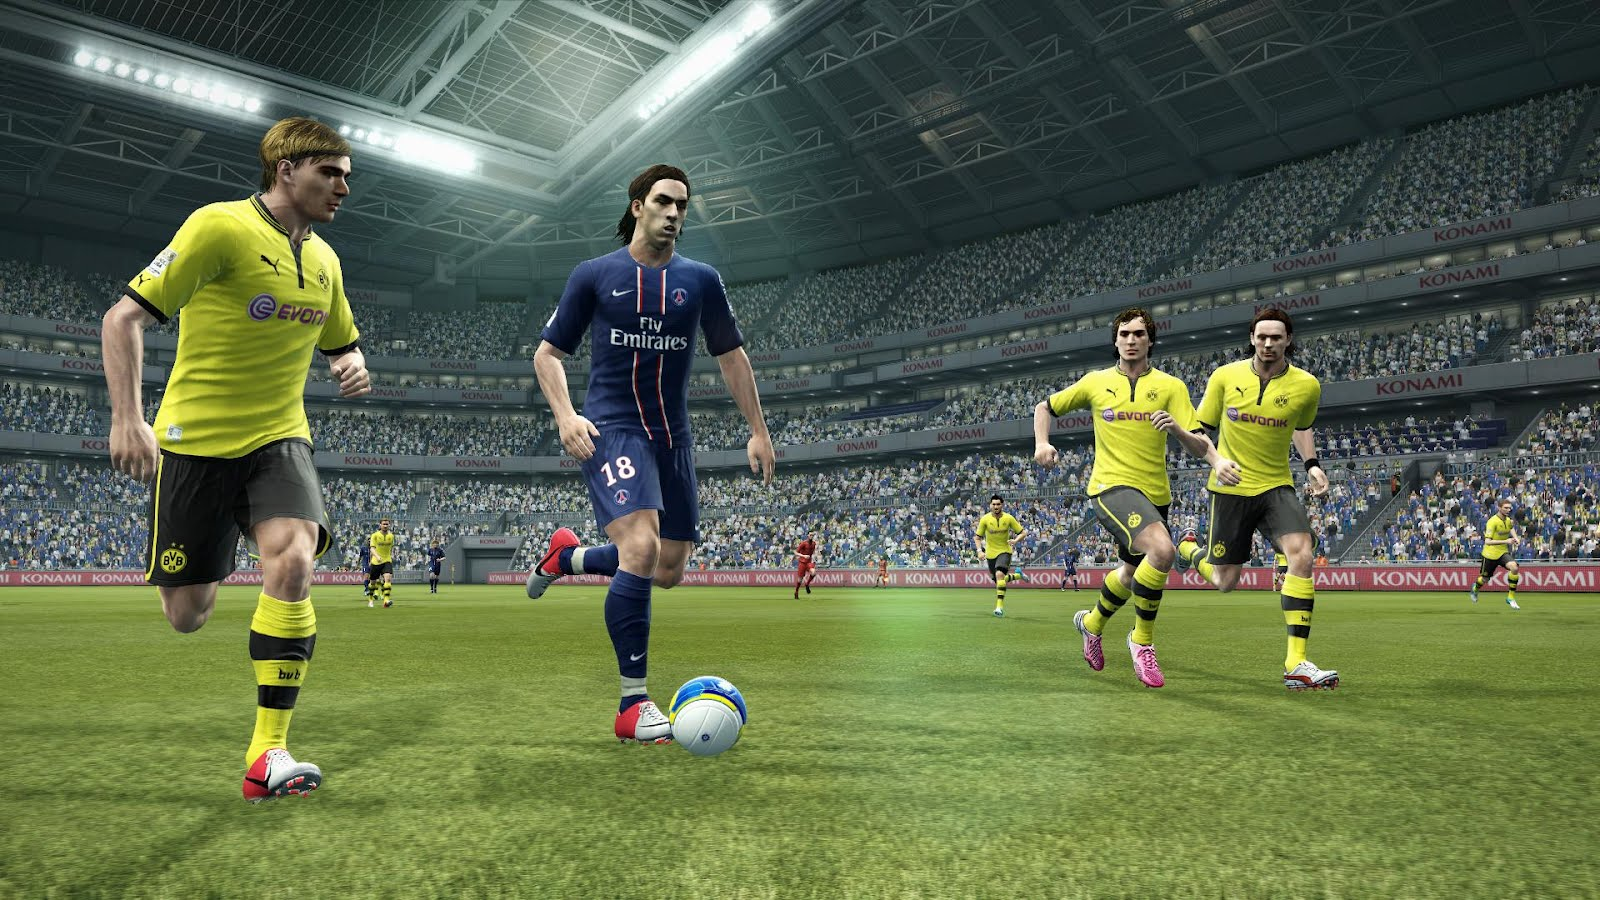 PES Pro Evolution Soccer 2013 Features